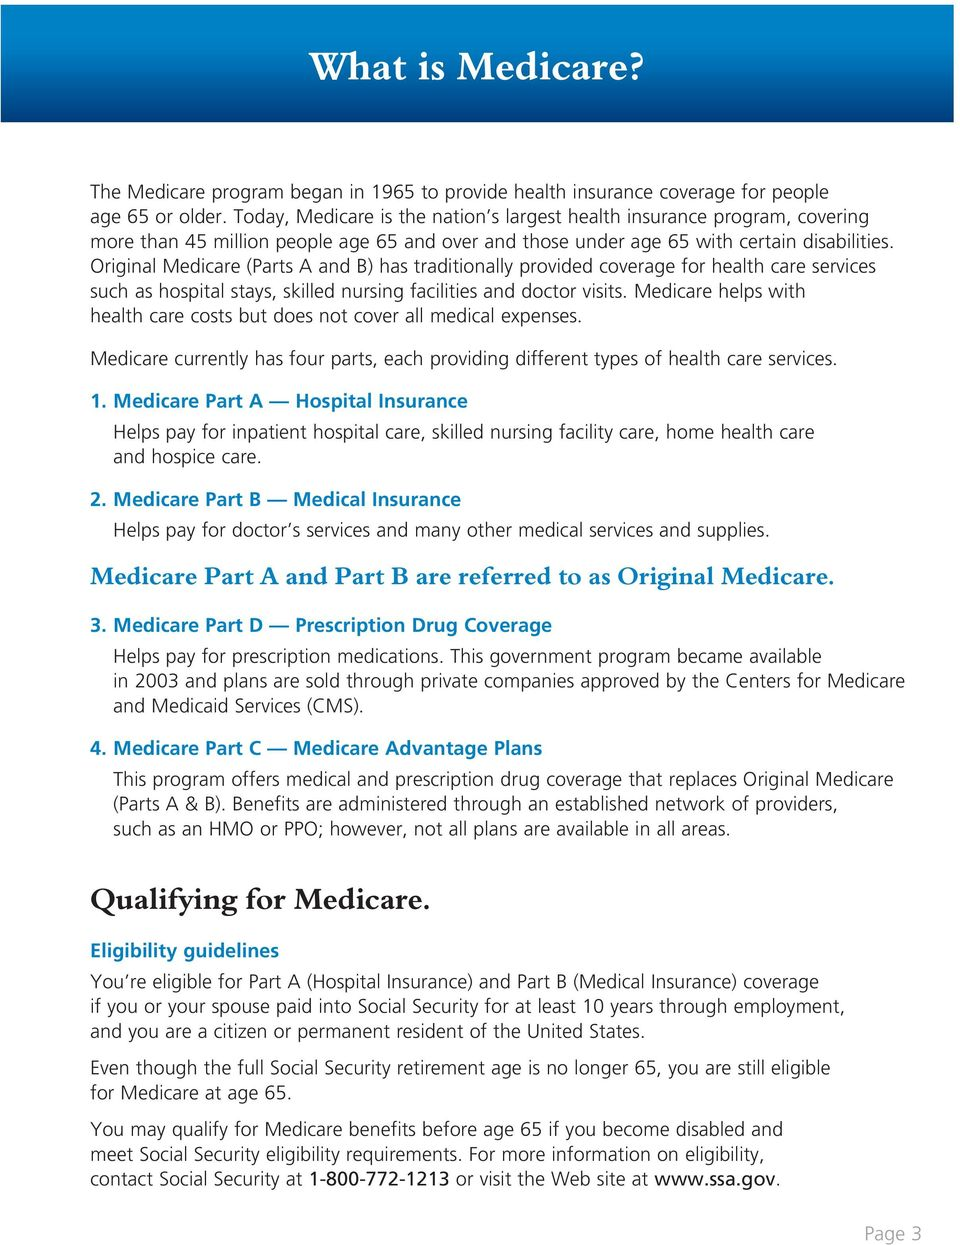 Original Medicare (Parts A and B) has traditionally provided coverage for health care services such as hospital stays, skilled nursing facilities and doctor visits.